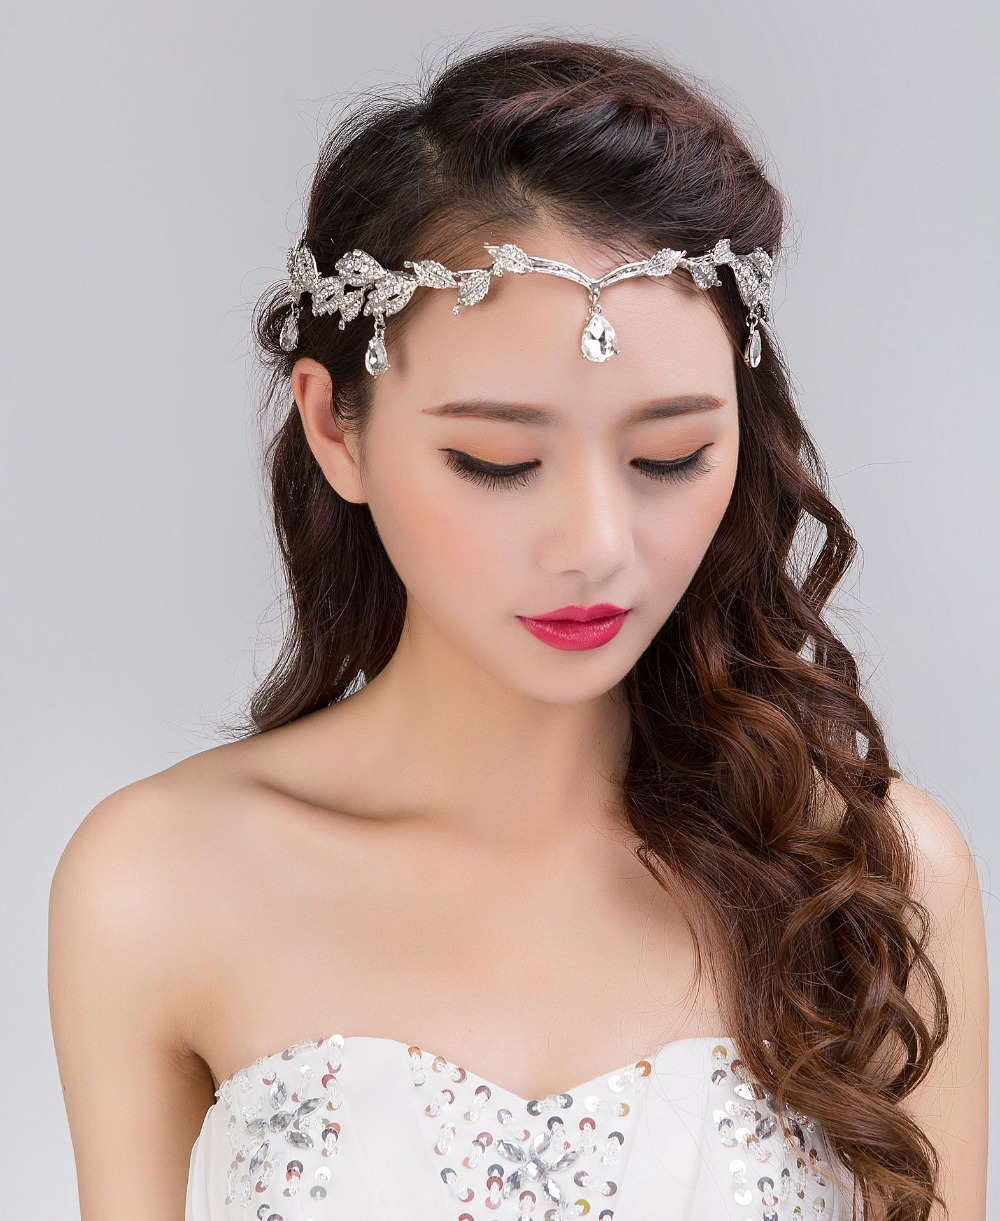 Shiny Crystal Frontlet Bridal Hair Accessories Crown Bride Forhead     Shiny Crystal Frontlet Bridal Hair Accessories Crown Bride Forhead Wedding  Prom Princess Party Headband in Hair Jewelry from Jewelry   Accessories on